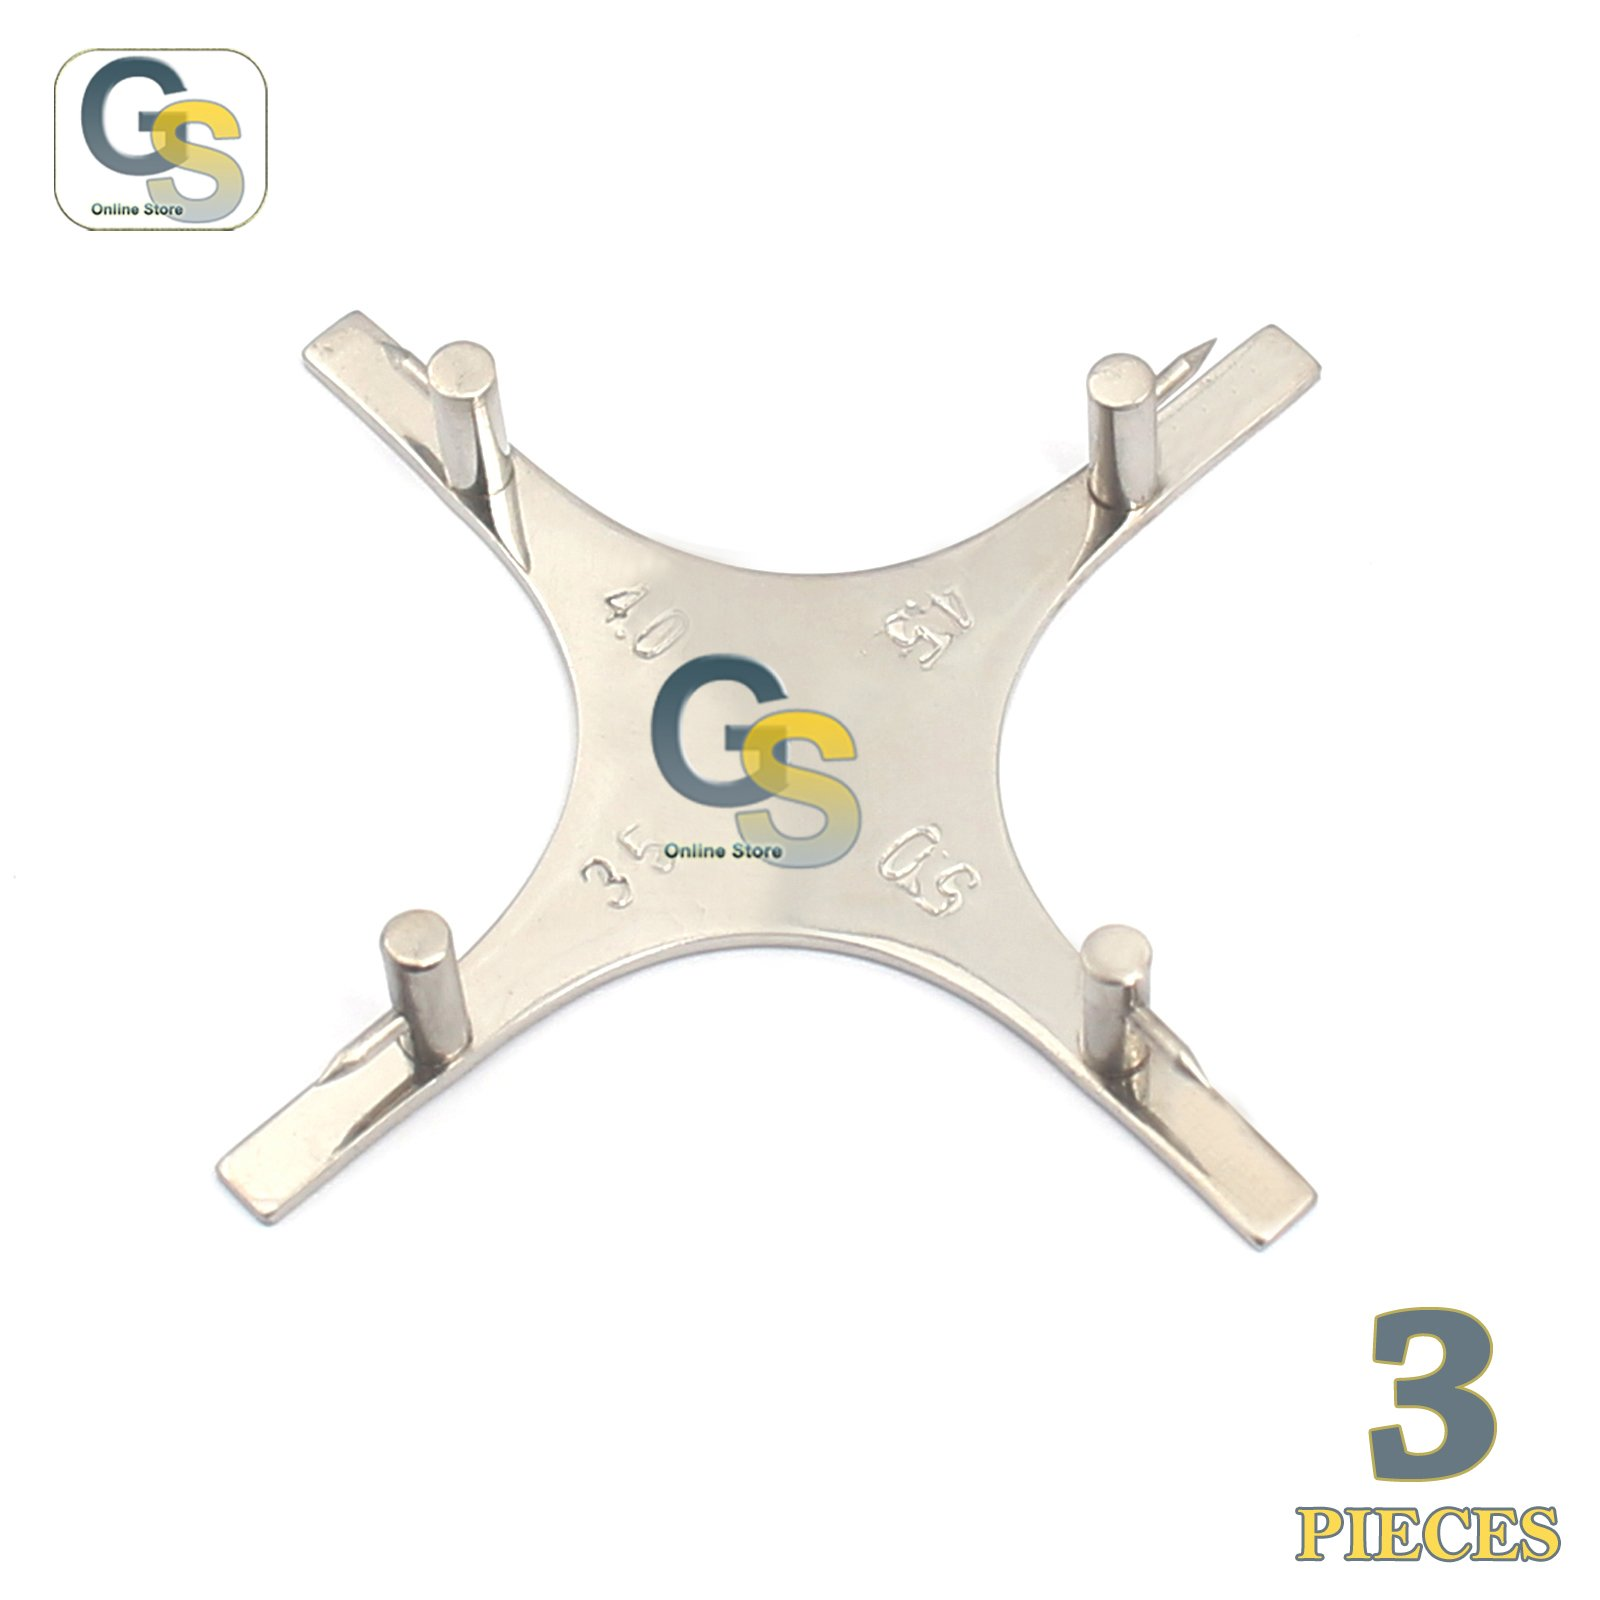 G.S 3 PCS BOONE HEIGHT GAUGE ORTHODONTIC 3.5MM-4MM-4.5MM-5MM DENTAL MEASURING INSTRUMENTS BEST QUALITY